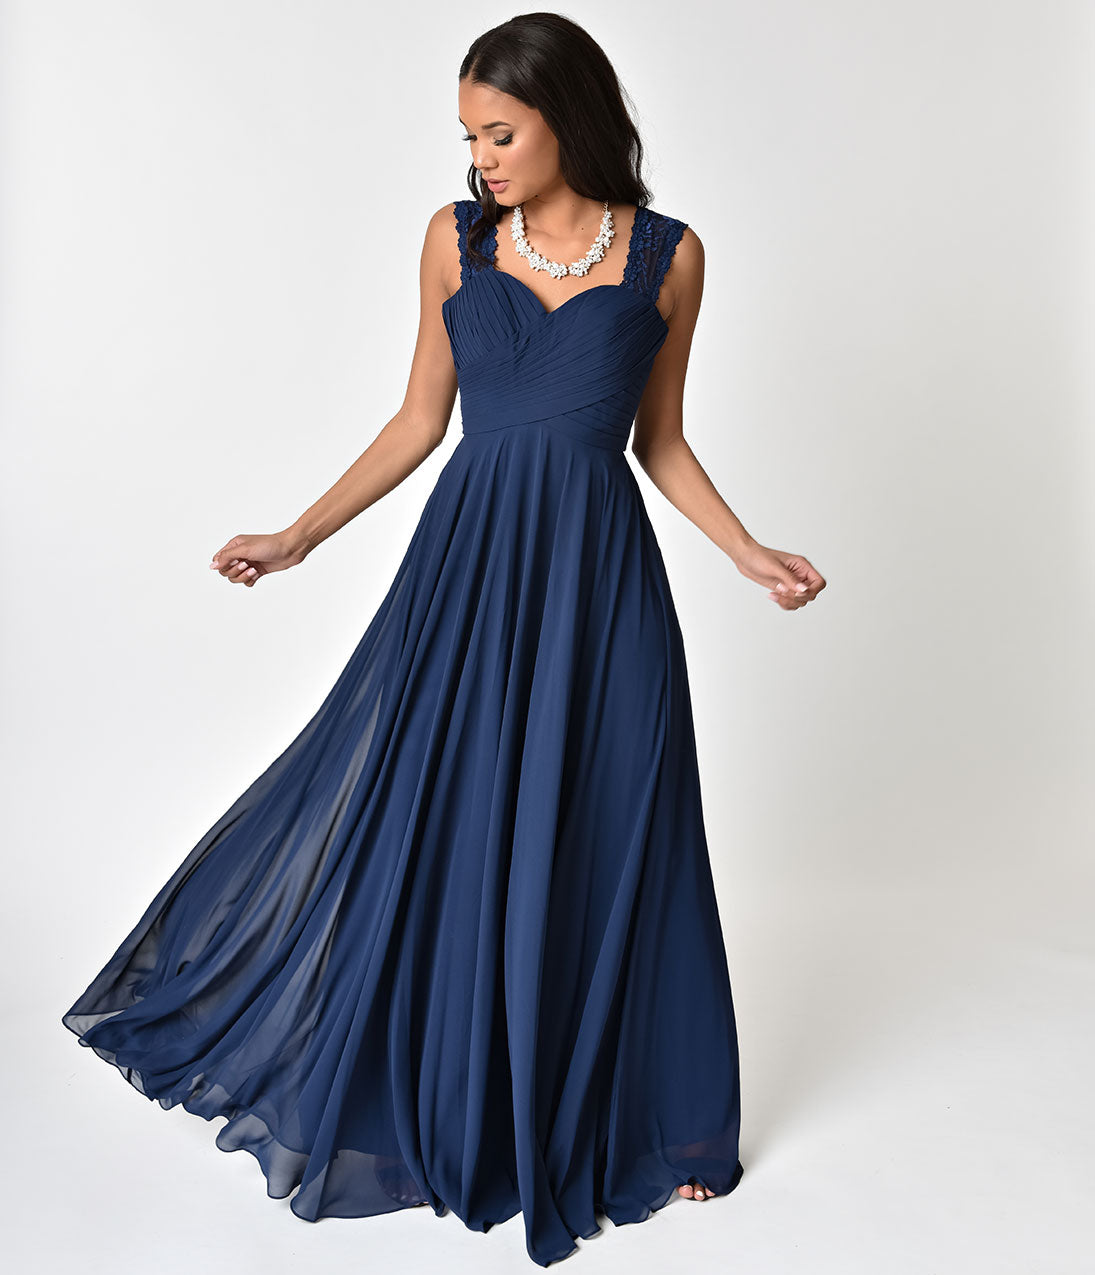 1950s Formal Dresses & Evening Gowns Navy Blue Lace Strap Sweetheart Neckline Chiffon Gown $118.00 AT vintagedancer.com